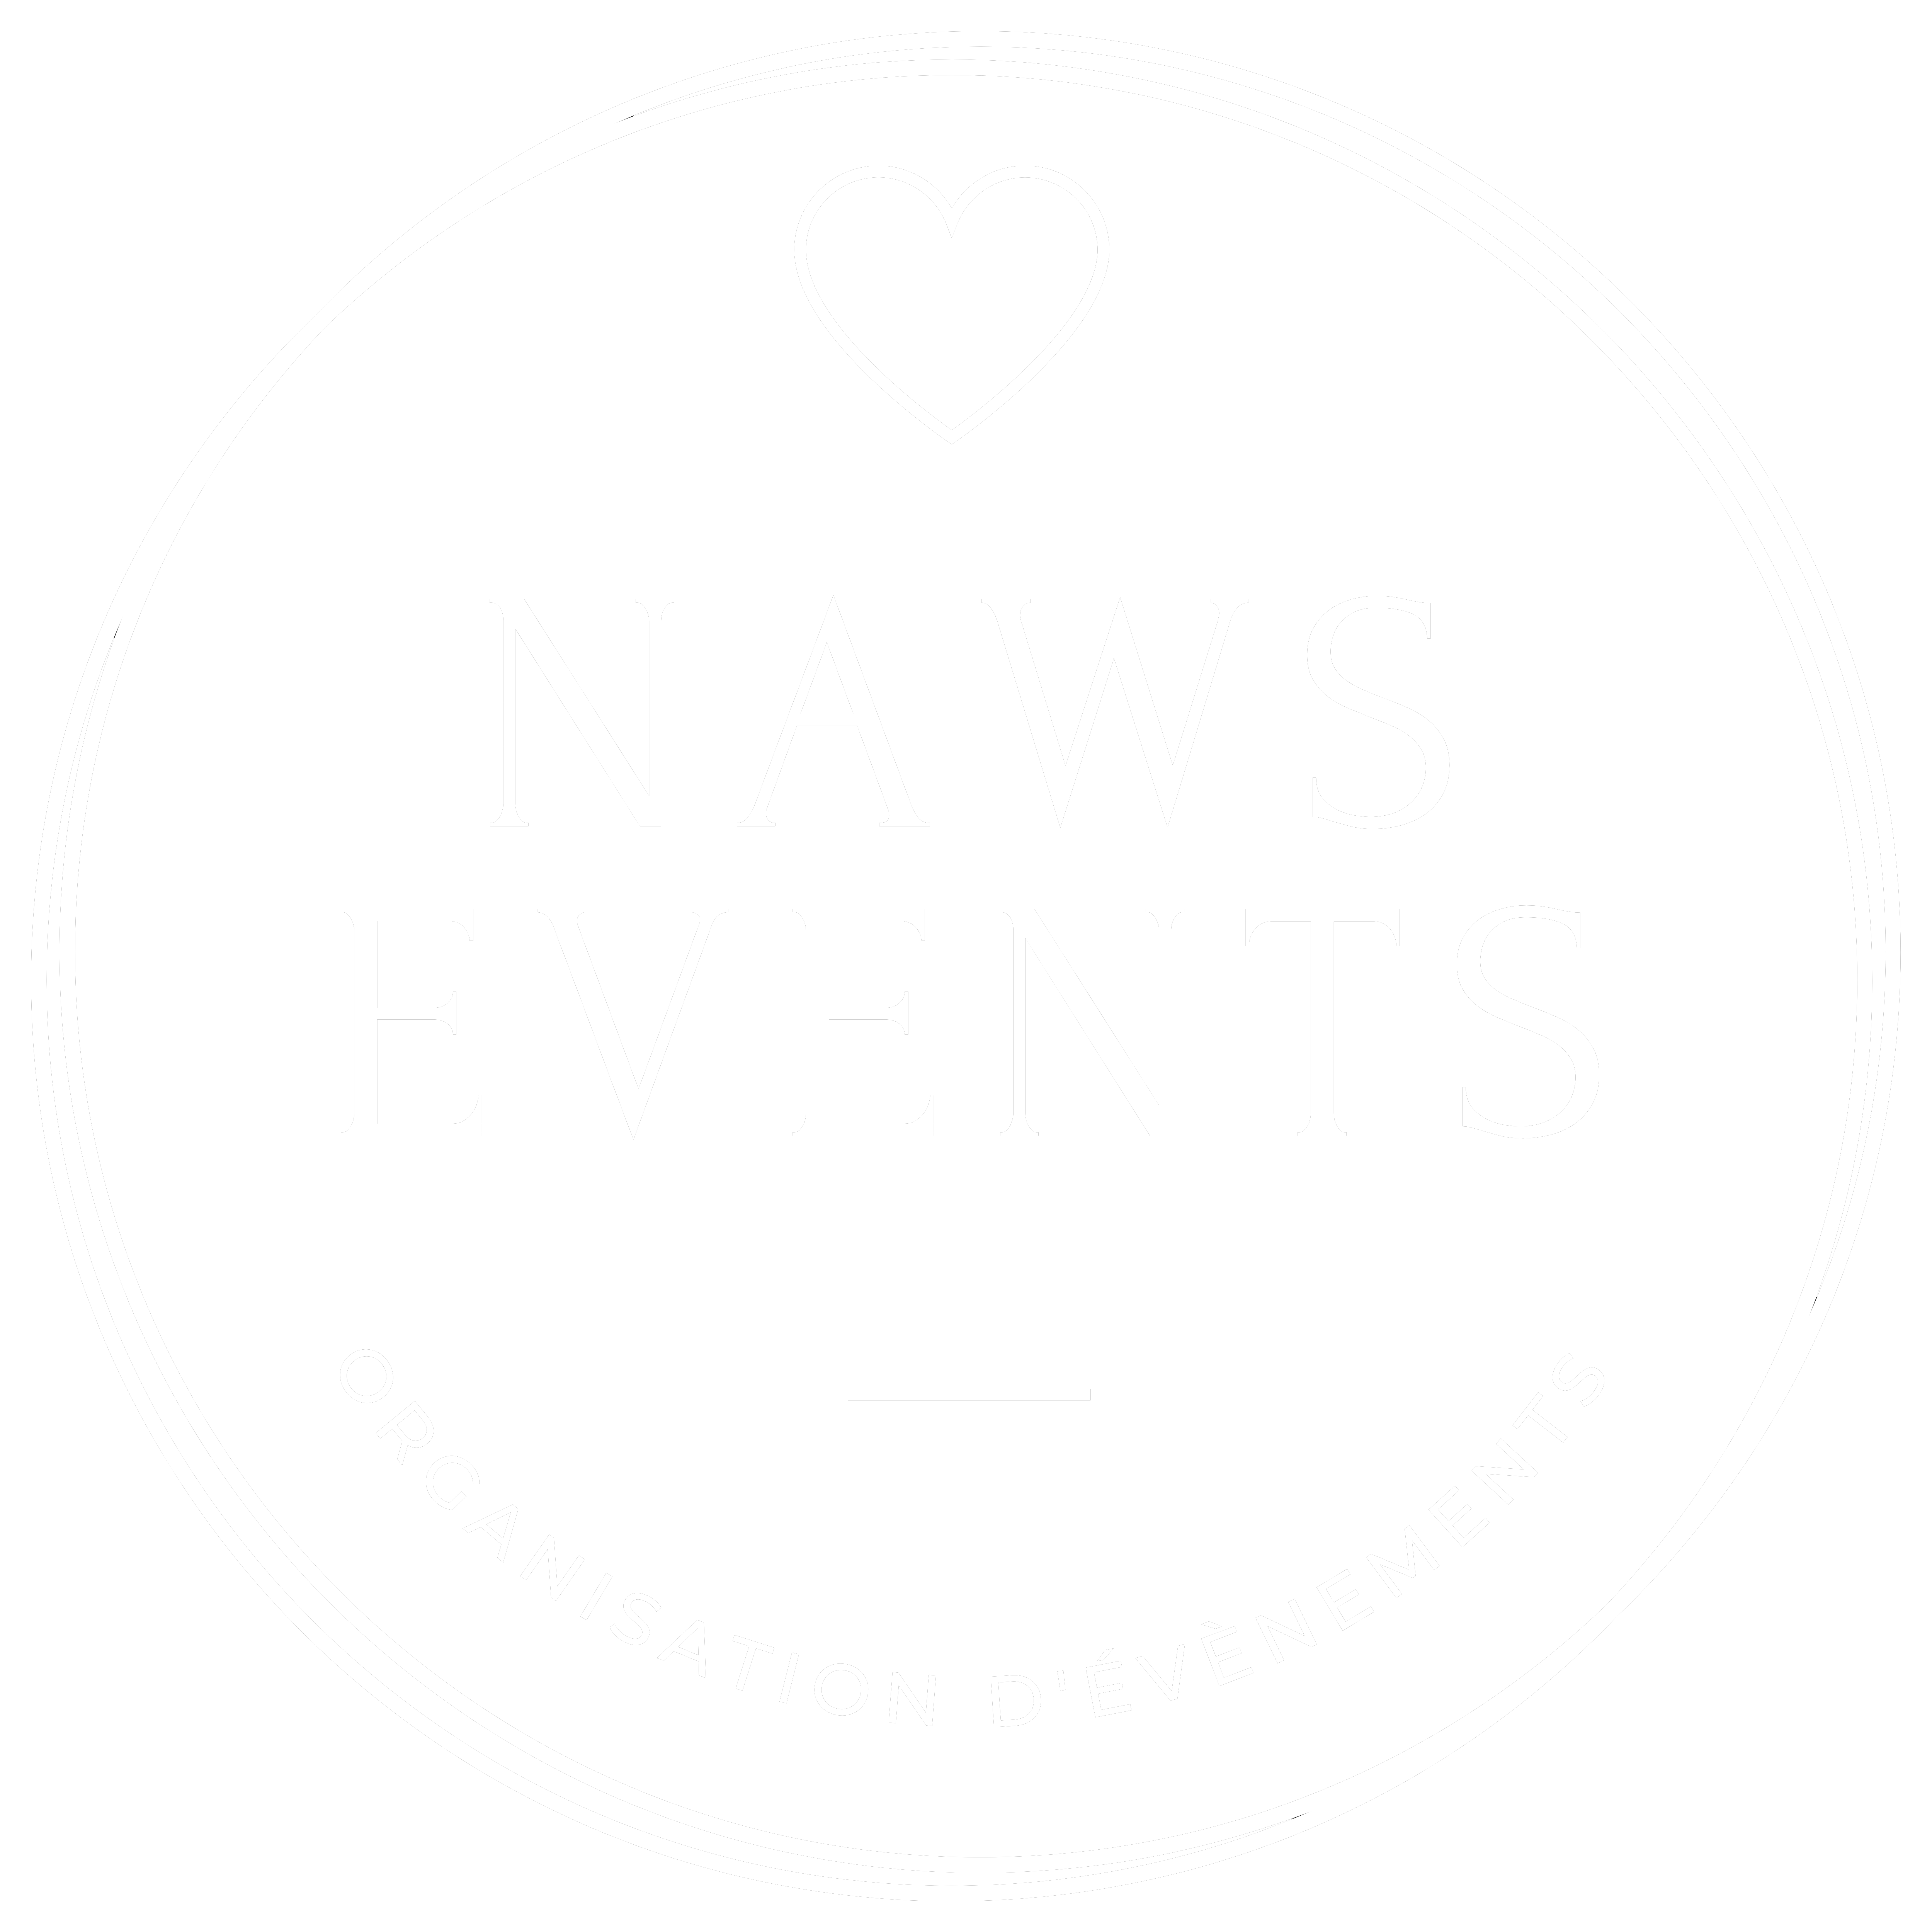 Naws events WP